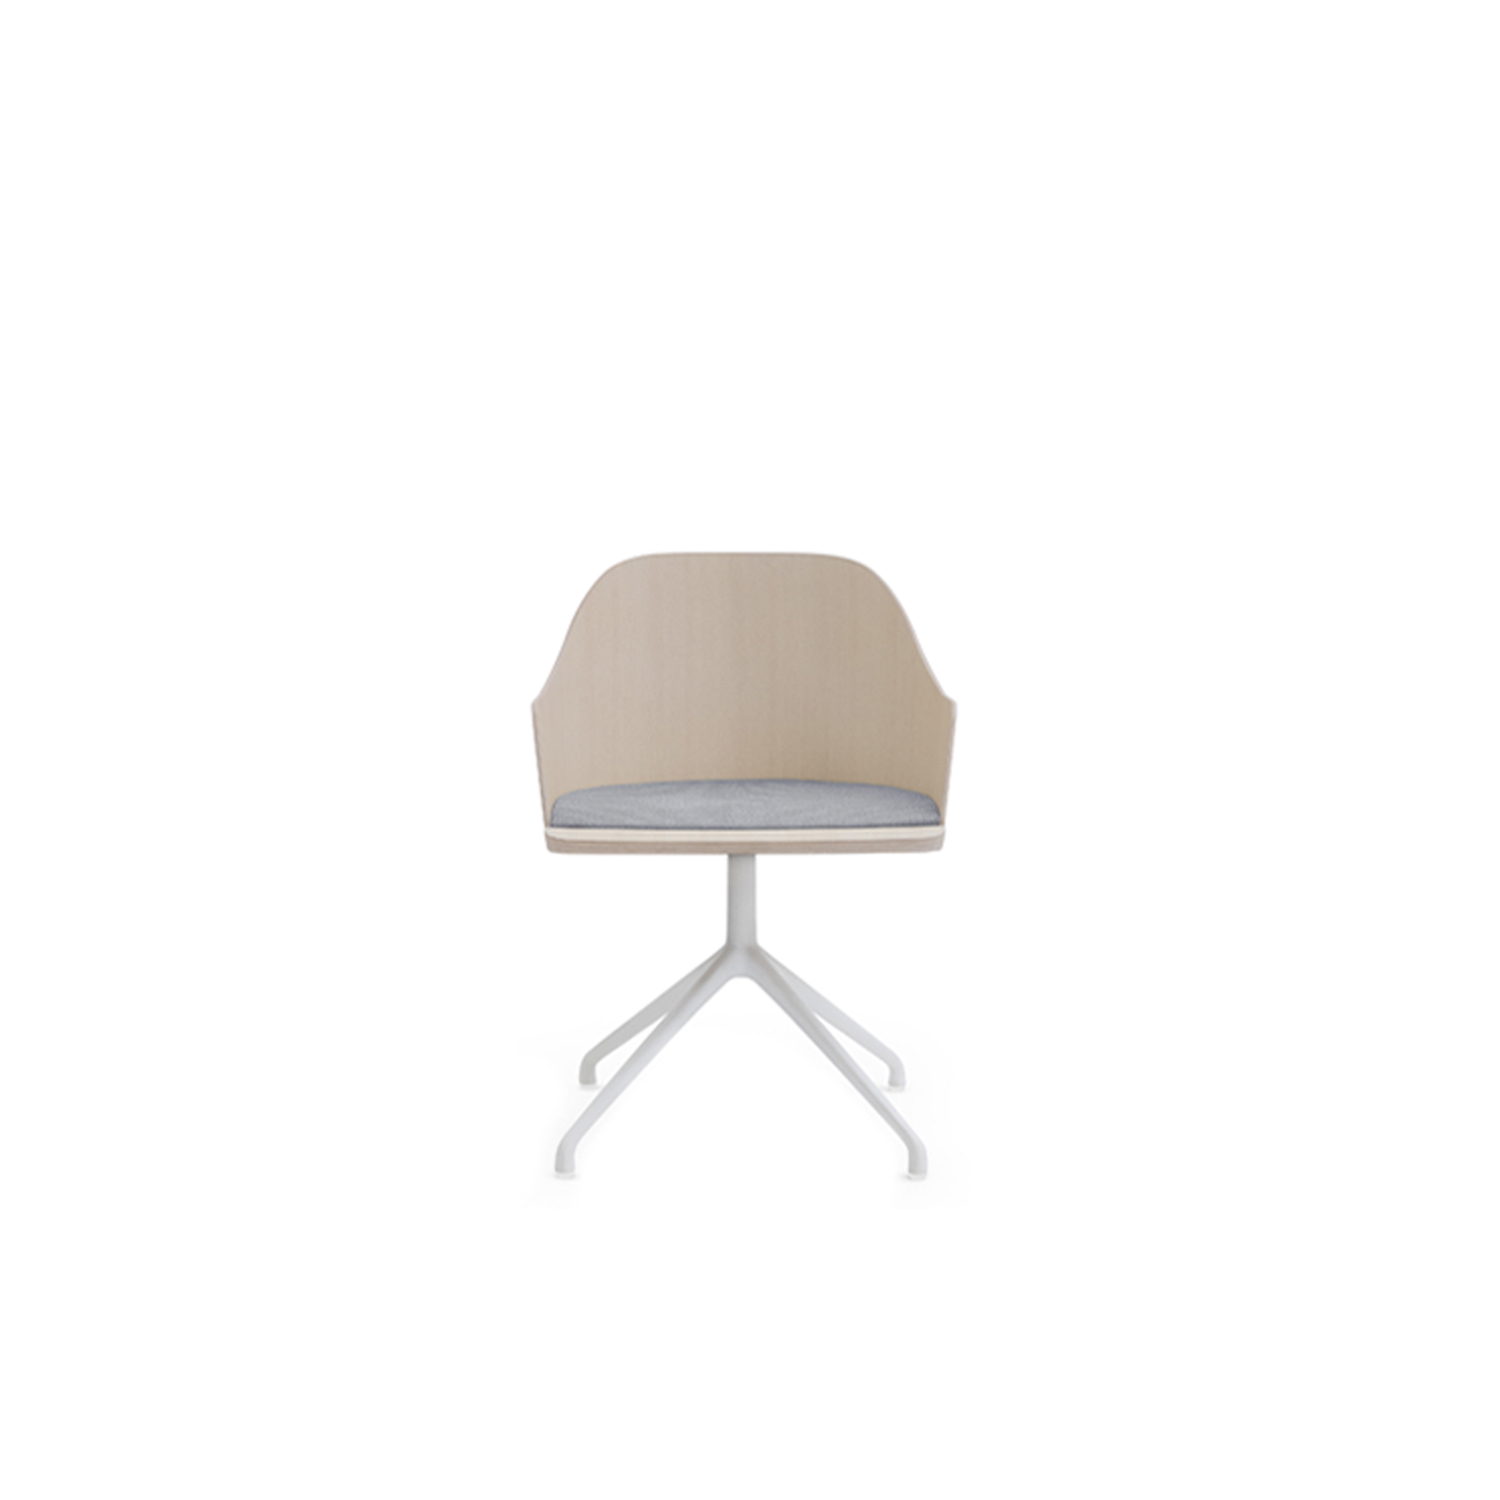 Fitt Swivel Upholstered Armchair - <p>This is the wooden chair as Billiani intends it, direct and timeless. The Valencian designer's intention is for versatility of use and multiple applications, with a striking level of comfort and intriguing proportions. The Fitt Classic collection starts with the light and refined ash chair with plywood shell. Alongside this, are armchair versions with a choice of lacquered metal frames: on four legs, sled, and swivel base. All models are available with wooden or upholstered seat.</p>  | Matter of Stuff